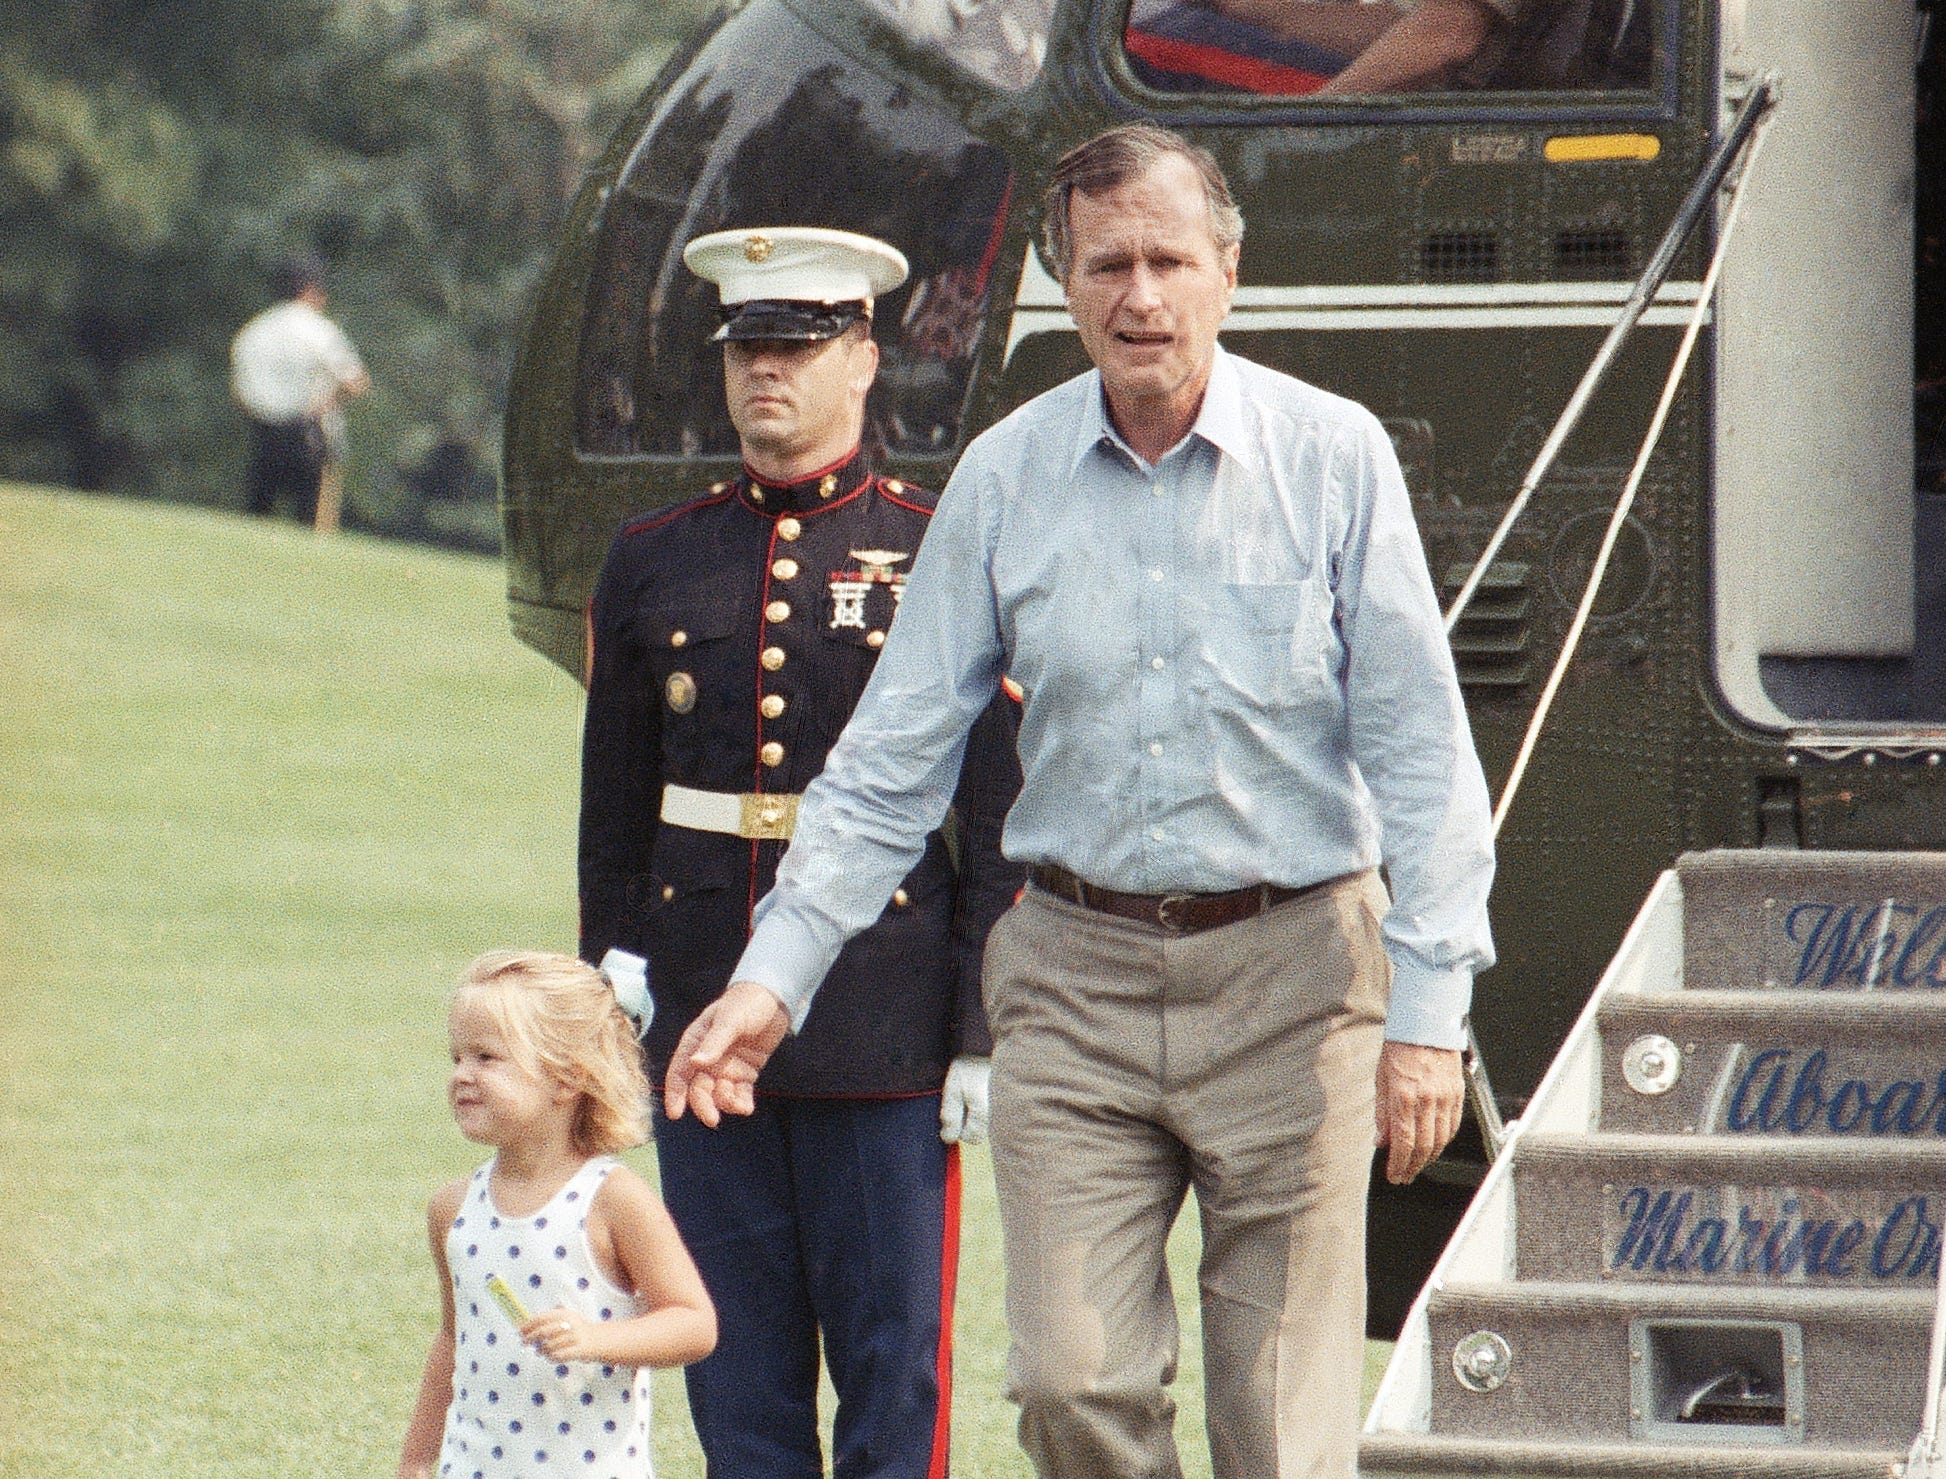 President George H. W. Bush follows his three-year-old granddaughter Marshall, down the steps of Marine One as they arrive July 23, 1989 at the White House in Washington after a weekend at Camp David. (AP Photo/Rick Bowmer)